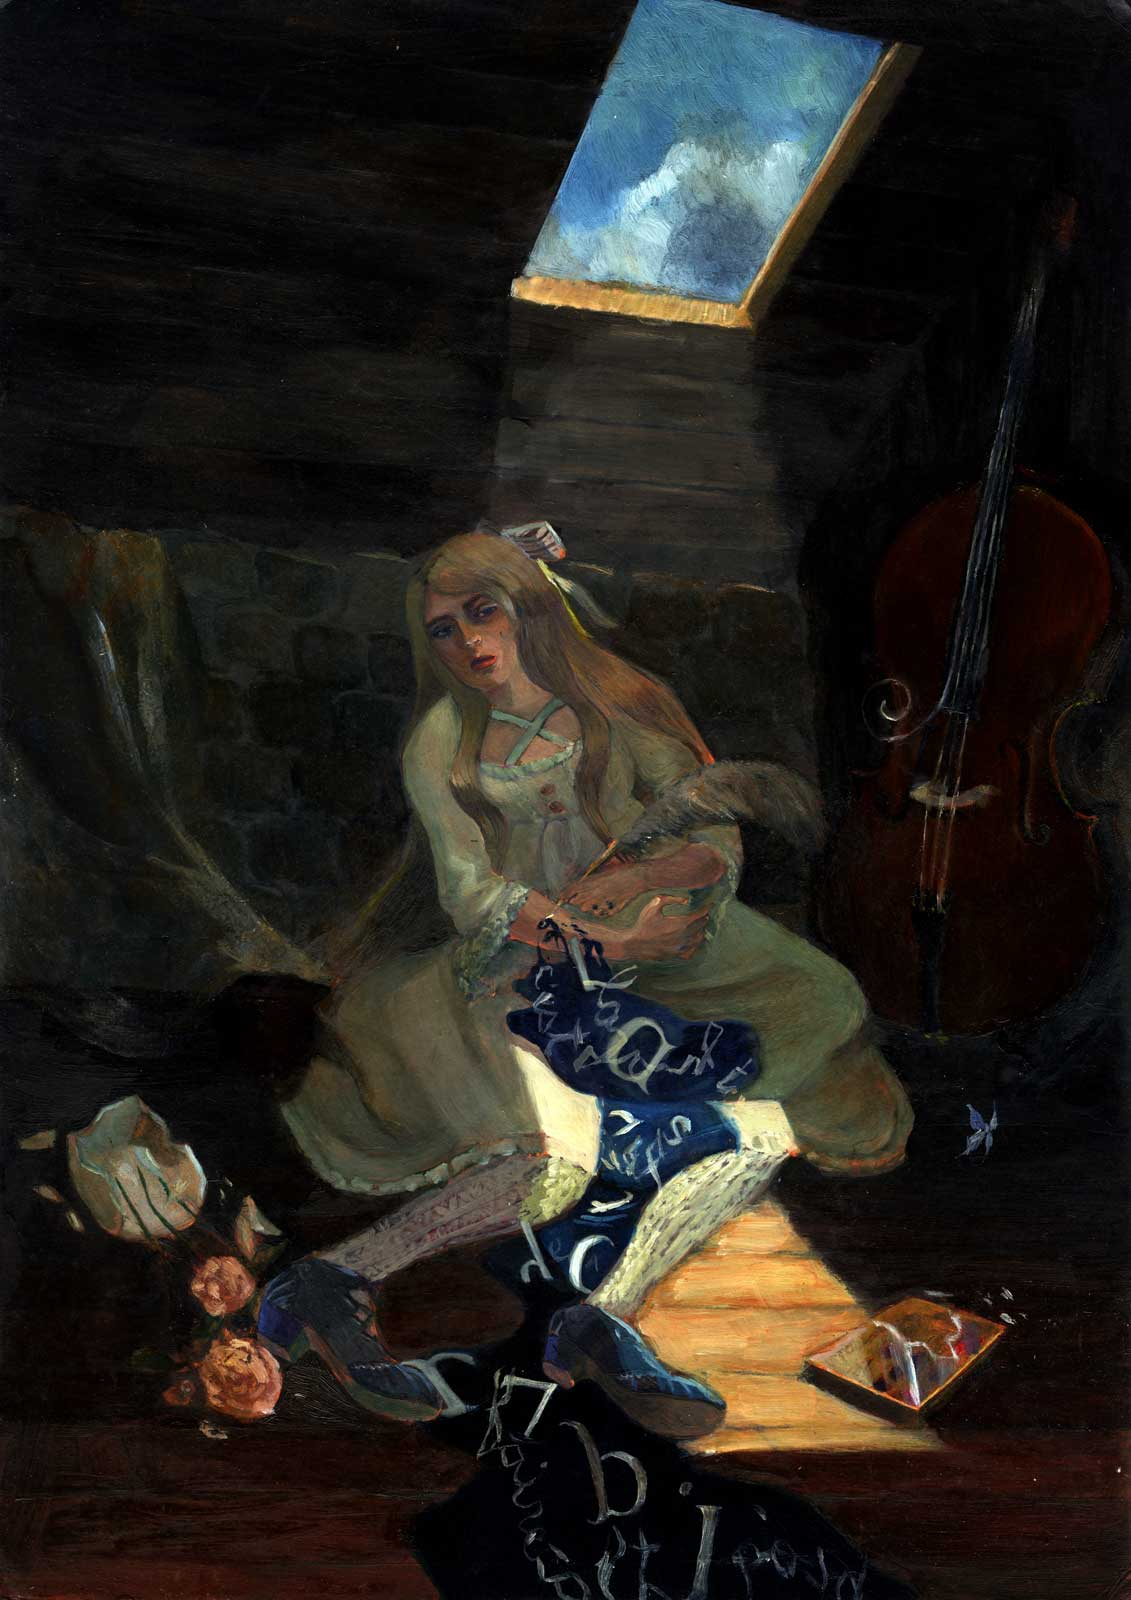 In the attic a young woman in lolita fashion is opening her wrist with a quill allowing a flow of blue ink and letters.